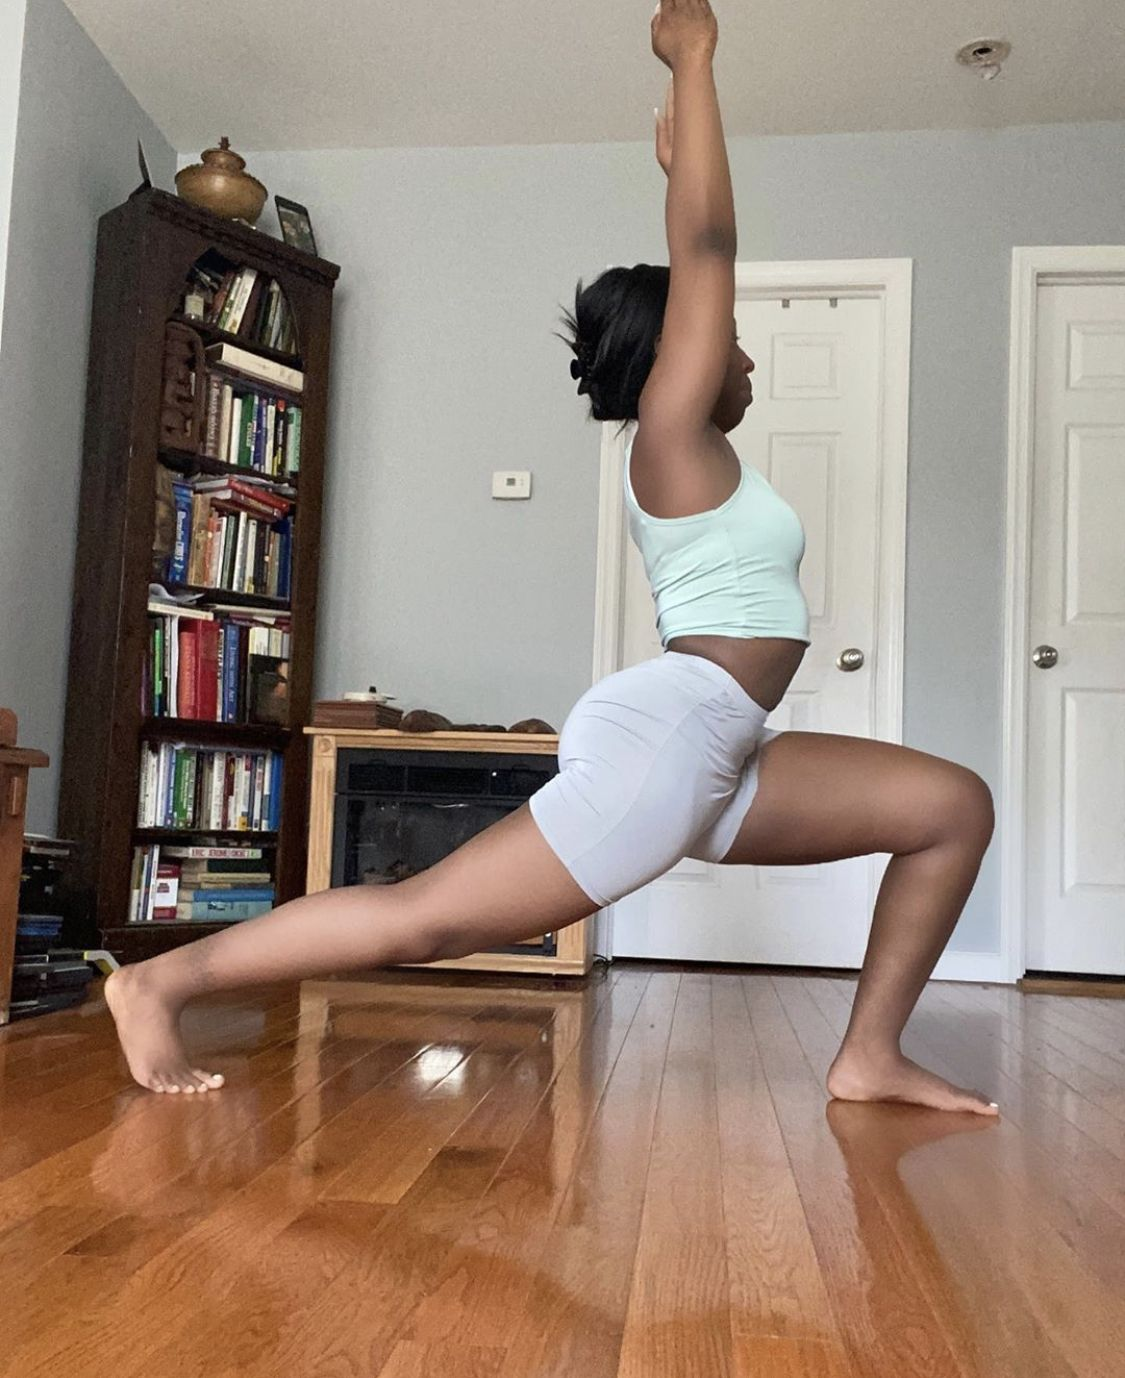 Pin By Habitual On Just Extend Fitness Body Kemetic Yoga Style